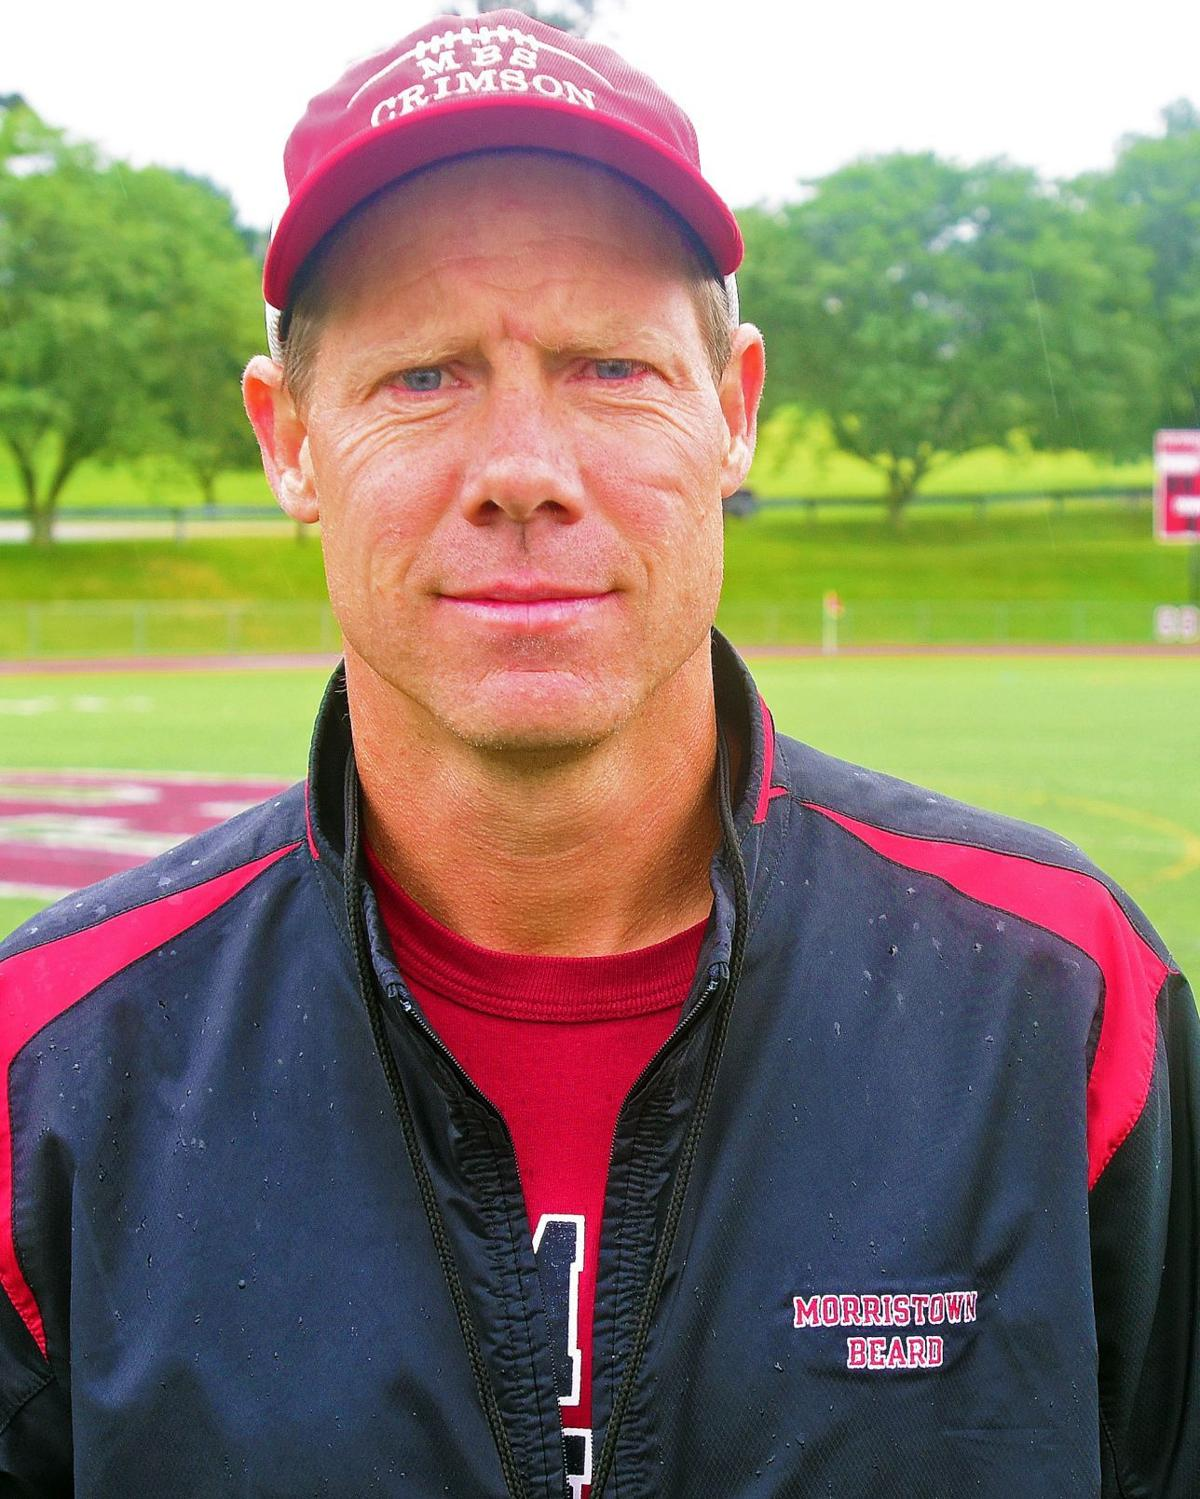 Morristown-Beard football coach Tim Fell